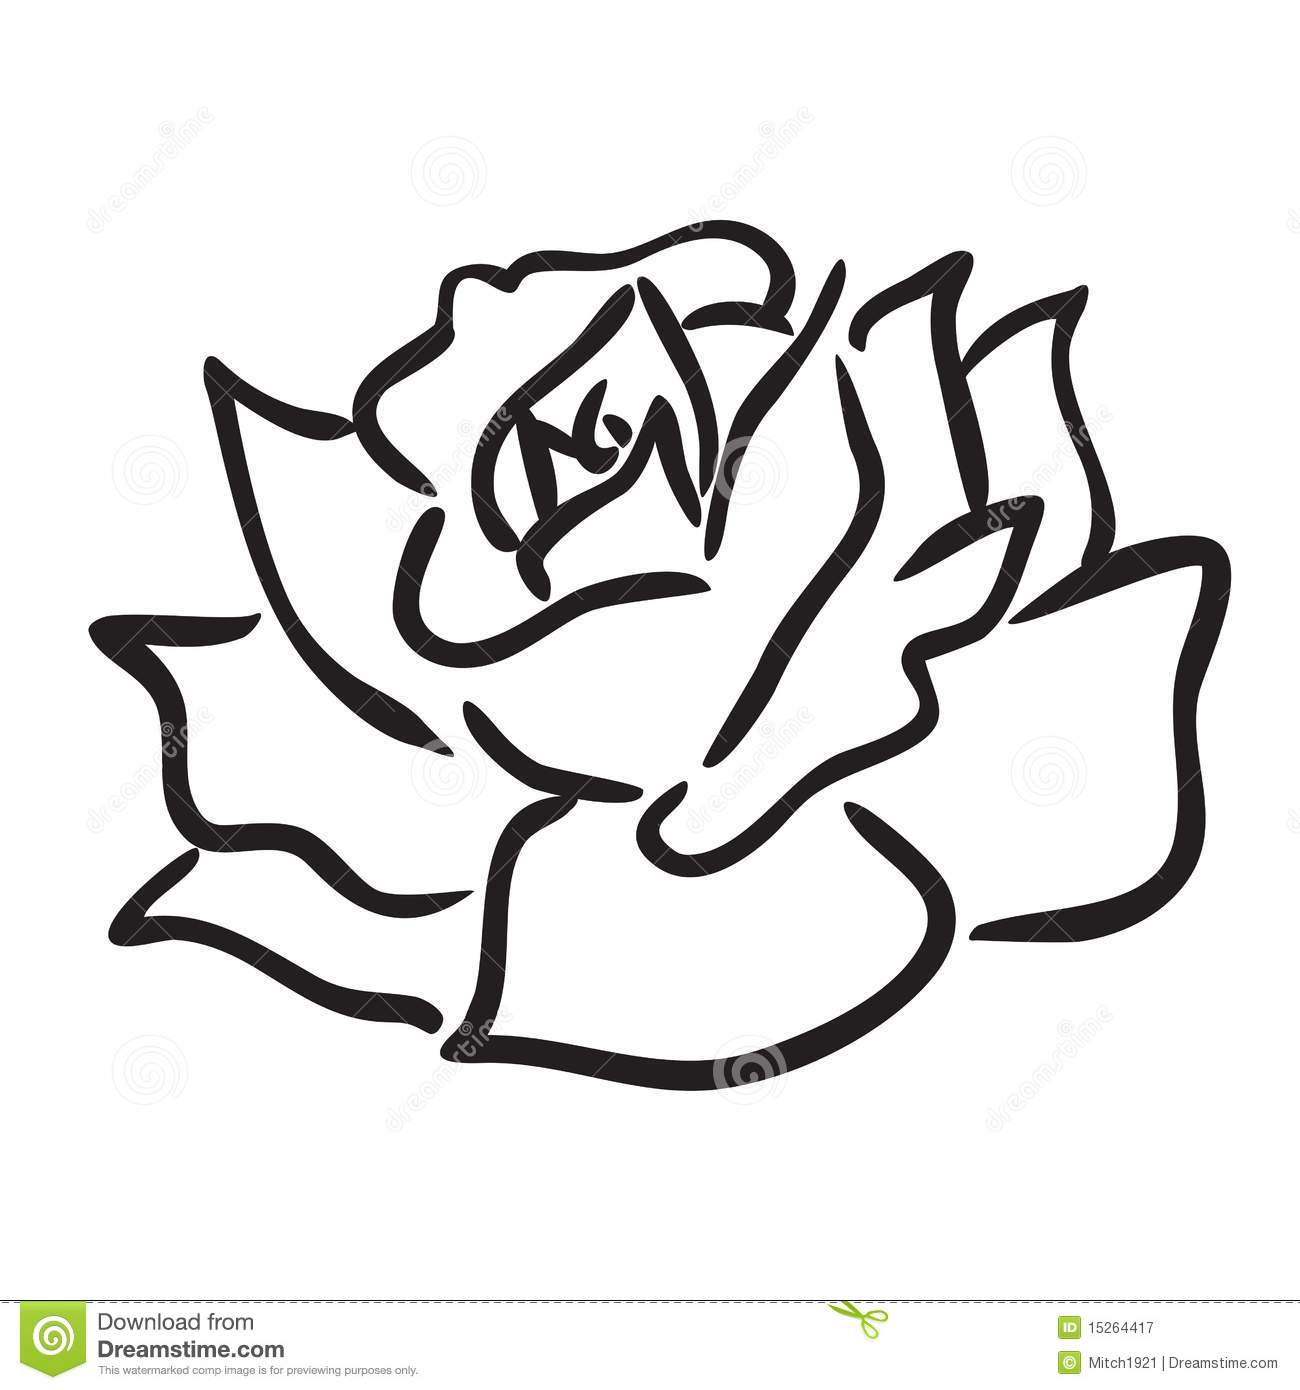 Uncategorized A Simple Rose Drawing hoontoidly simple rose drawing images drawing